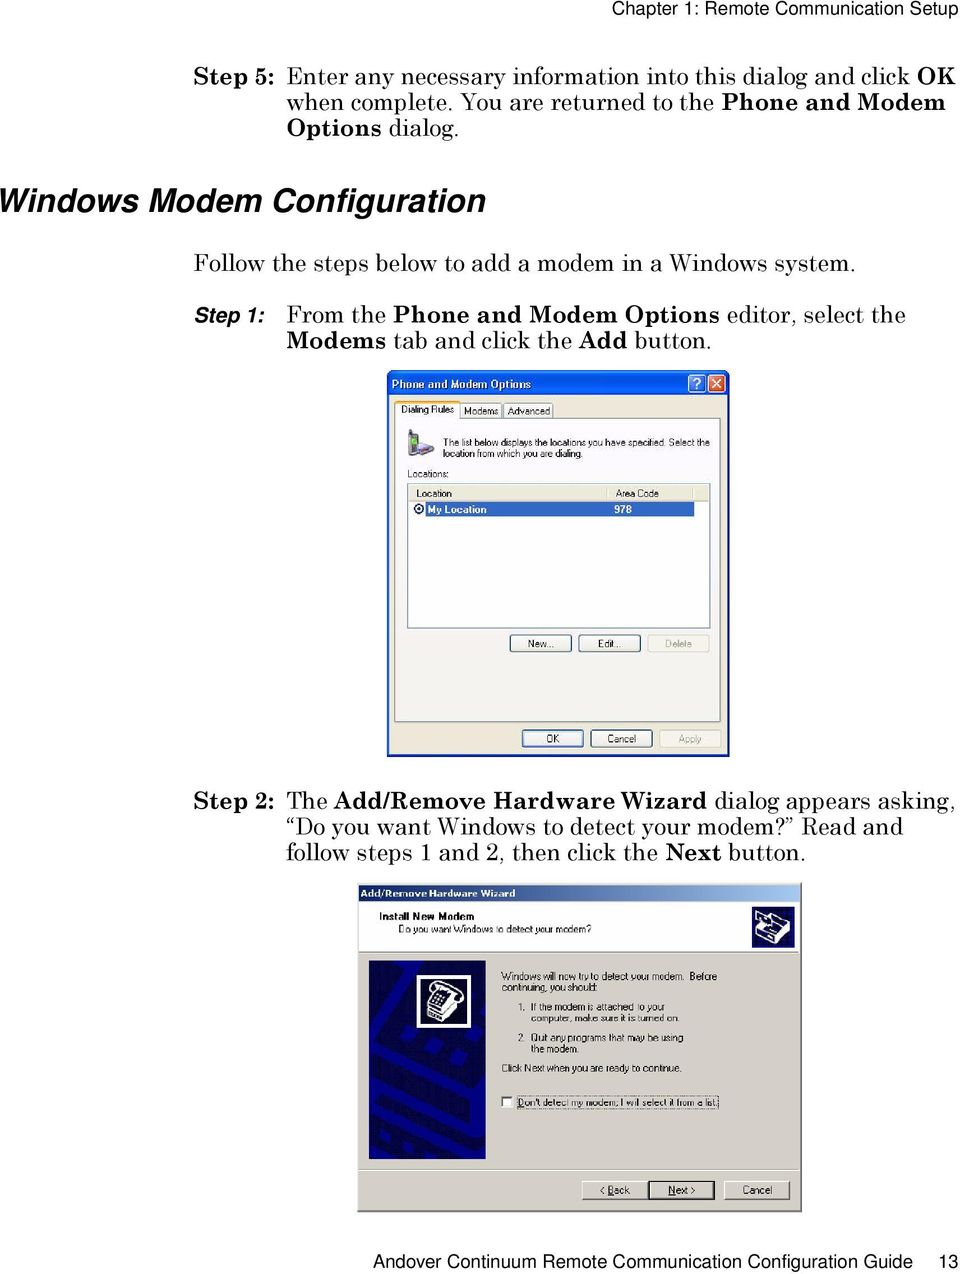 Step 1: From the Phone and Modem Options editor, select the Modems tab and click the Add button.